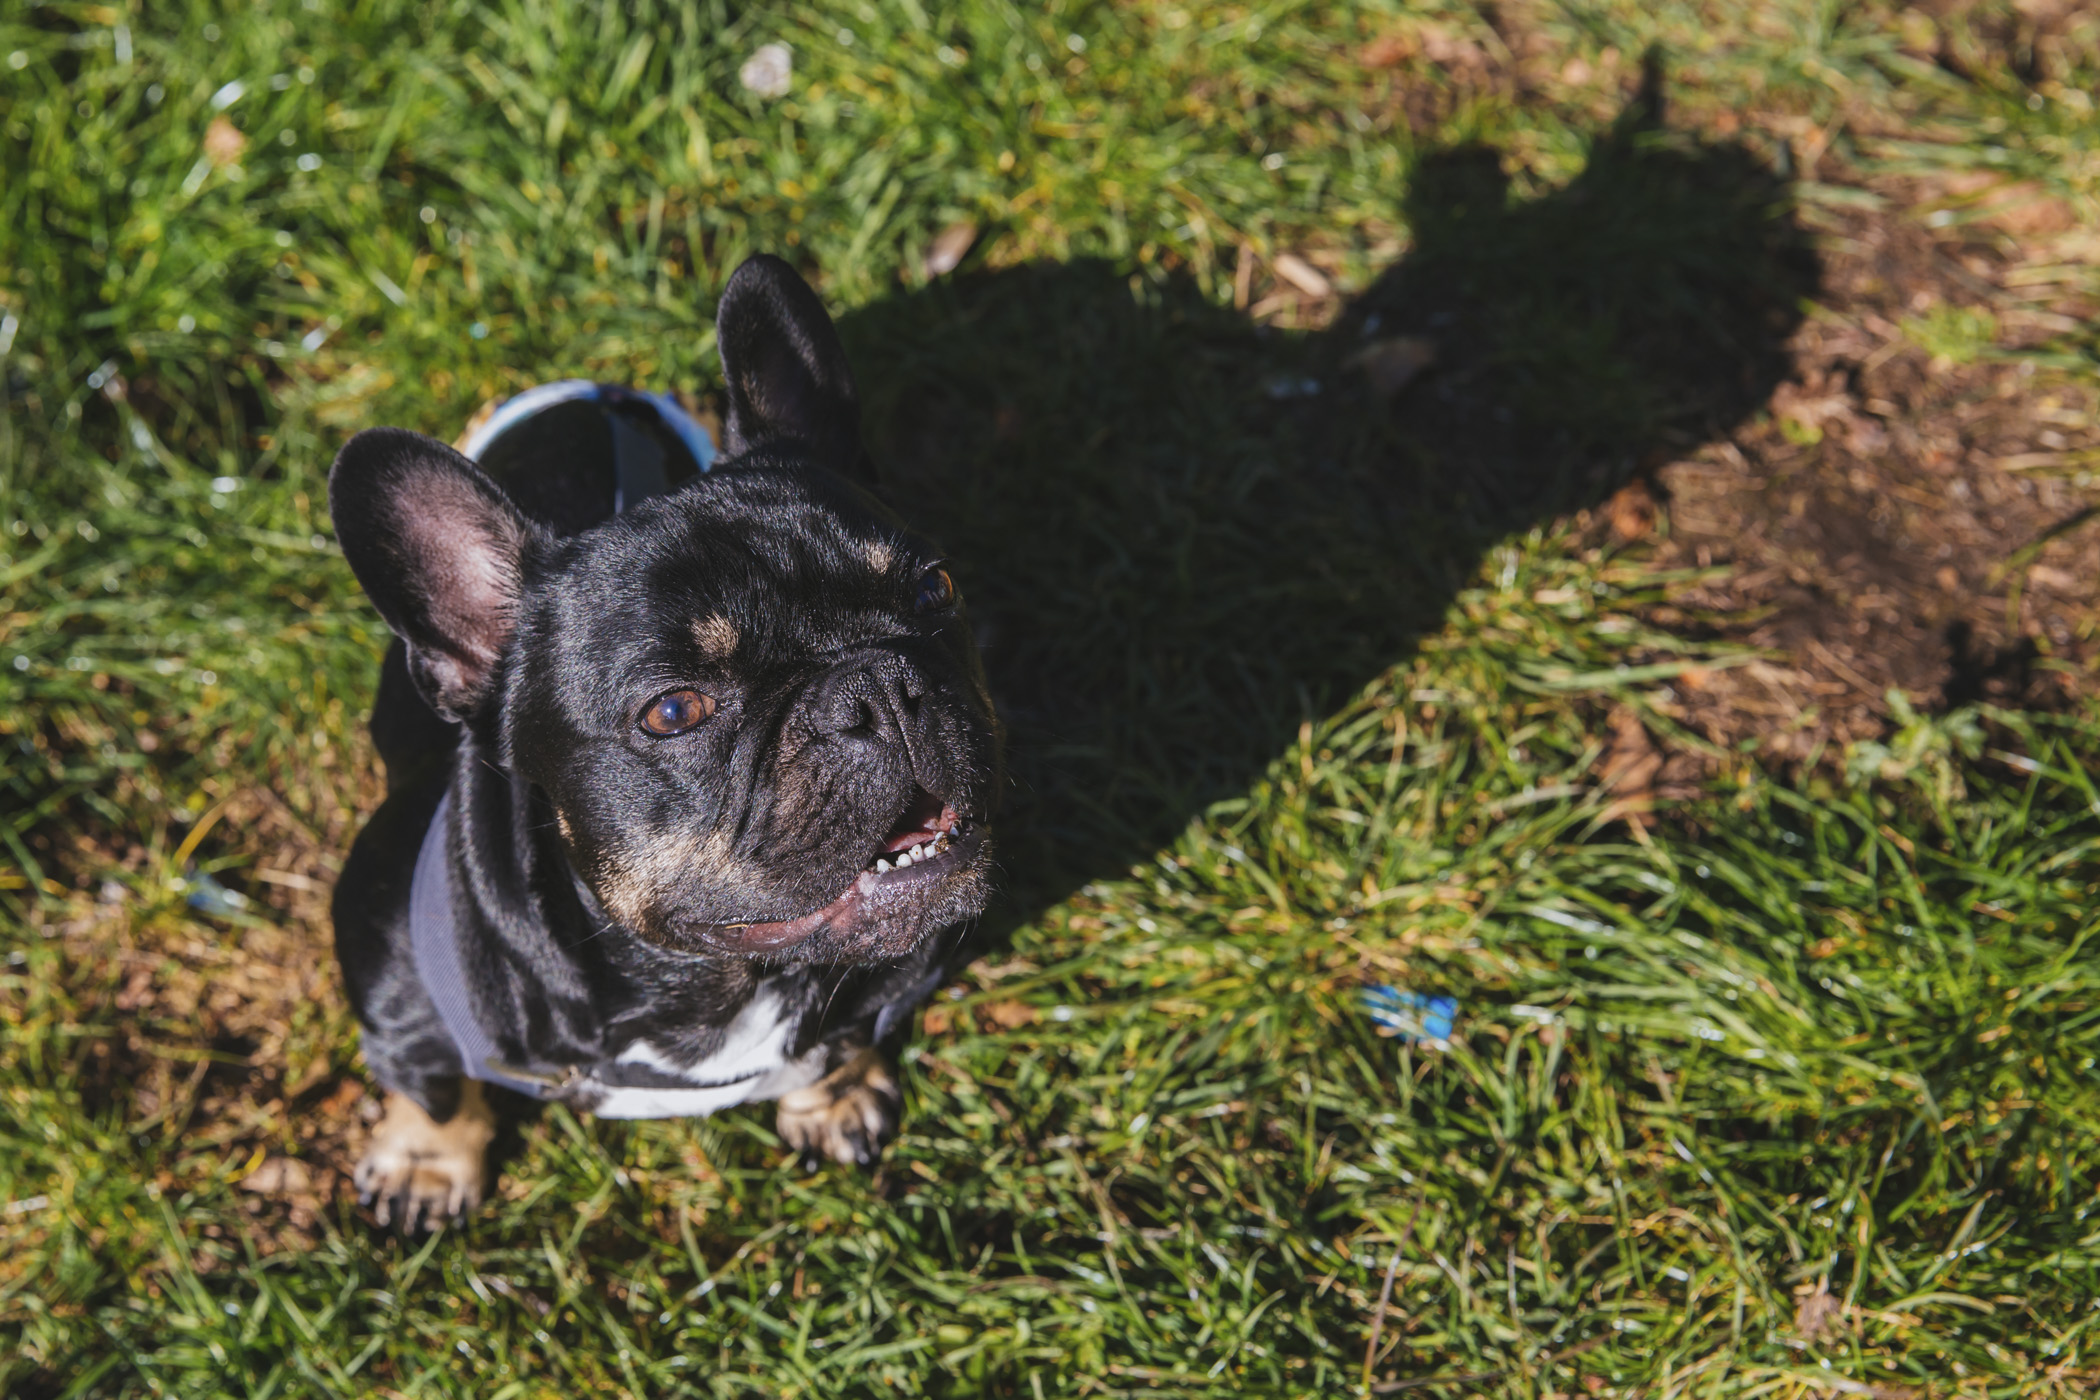 "I, Gustavo Grenier Lampe, am a 2-year-old Frenchie with IVDD but that doesn't slow me down! I am paralyzed so I wear diapers inside, but zoom around in my wheels like there's no tomorrow outside. I was adopted in October, and fell head over paws for my parents. I likes balls, treats and my cat brother, and don't care for loud noises and being wet. You can follow me{&nbsp;}<a  href=""https://www.instagram.com/megustavo_doggo/"" target=""_blank"" title=""https://www.instagram.com/megustavo_doggo/"">@megustavo_doggo</a>.{&nbsp;}<a  href=""http://seattlerefined.com/ruffined"" target=""_blank"" title=""http://seattlerefined.com/ruffined"">The Seattle RUFFined Spotlight</a>{&nbsp;}is a weekly profile of local pets living and loving life in the PNW. If you or someone you know has a pet you'd like featured,{&nbsp;}<a  href=""mailto:hello@seattlerefined.com"" target=""_blank"" title=""mailto:hello@seattlerefined.com"">email us</a>{&nbsp;}at and your furbaby could be the next spotlighted! (Image: Sunita Martini / Seattle Refined)"